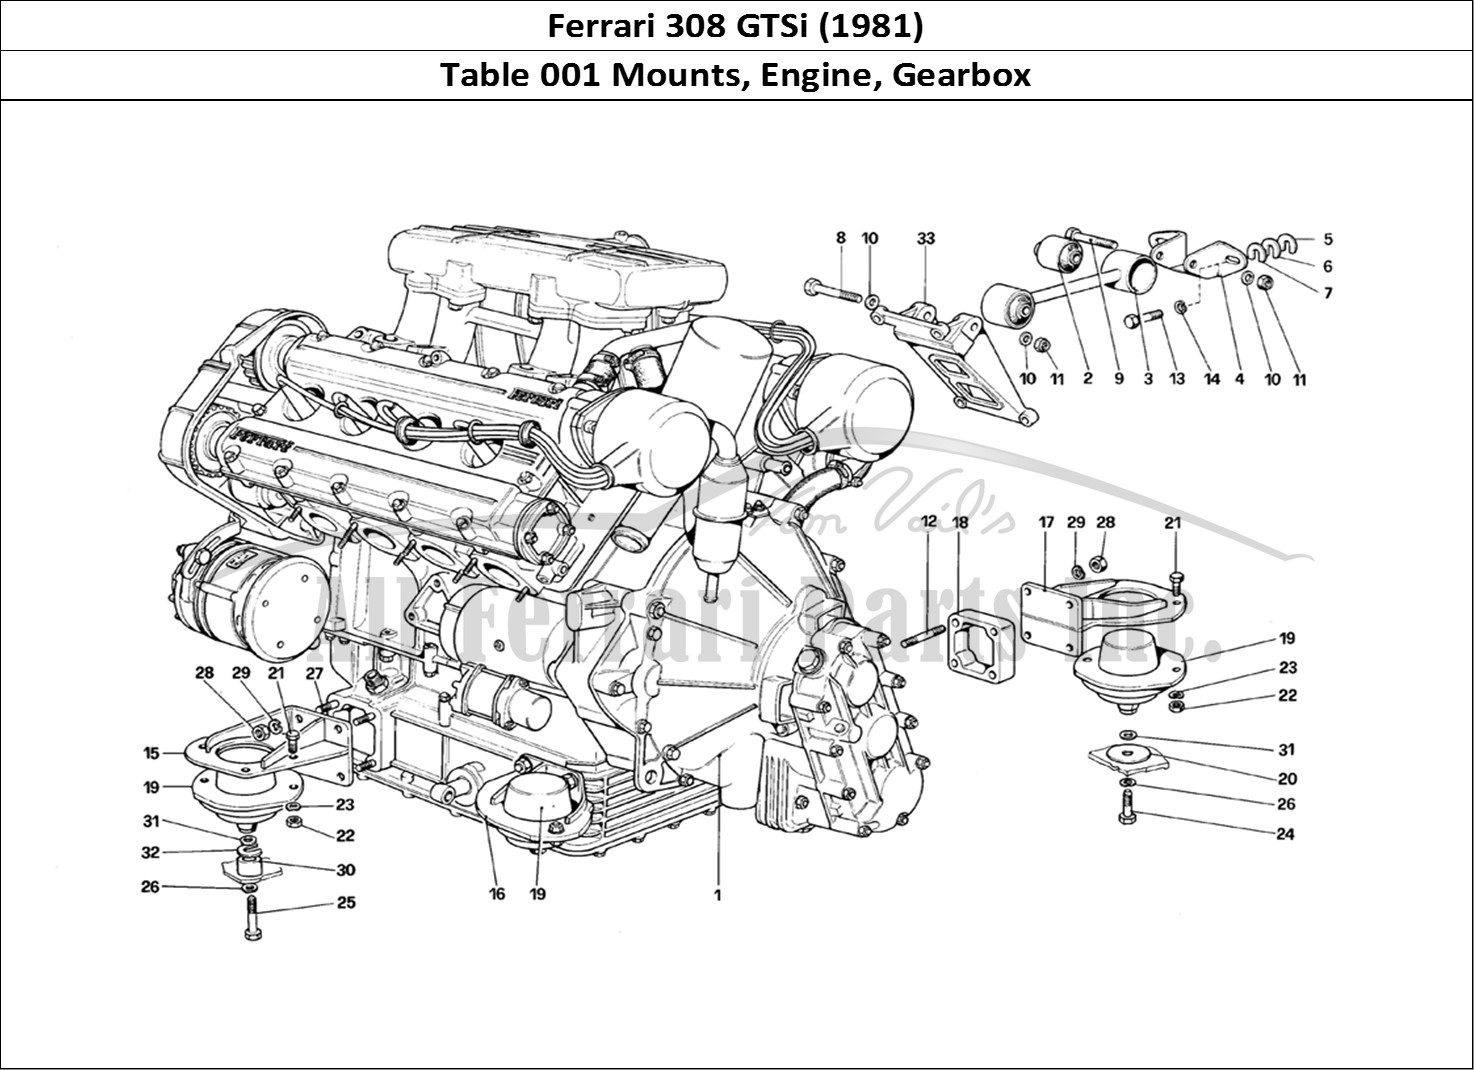 Ferrari 308 Engine Diagram Trusted Wiring Gm Buy Original Gtsi 1981 001 Mounts Gearbox Timing Belts